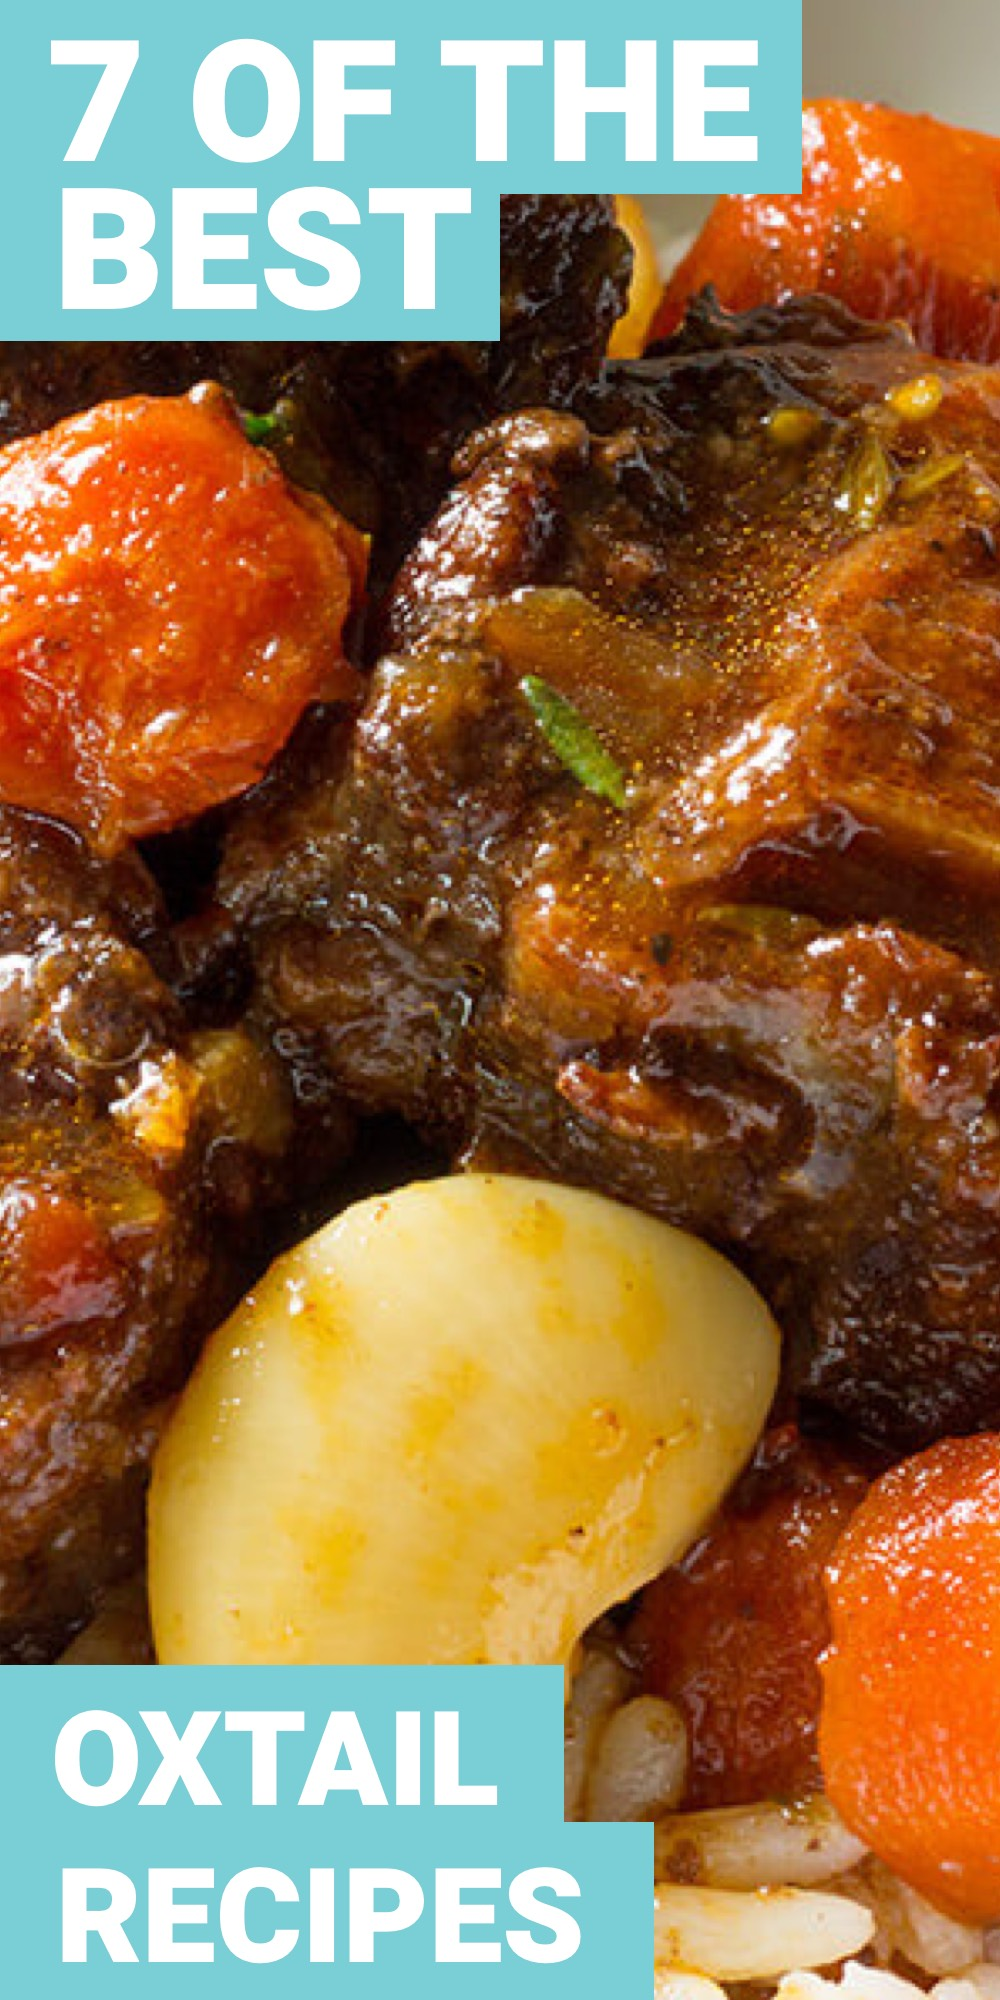 Having oxtail is something that everyone should experience. Here are 7 oxtail recipes that you need to try.